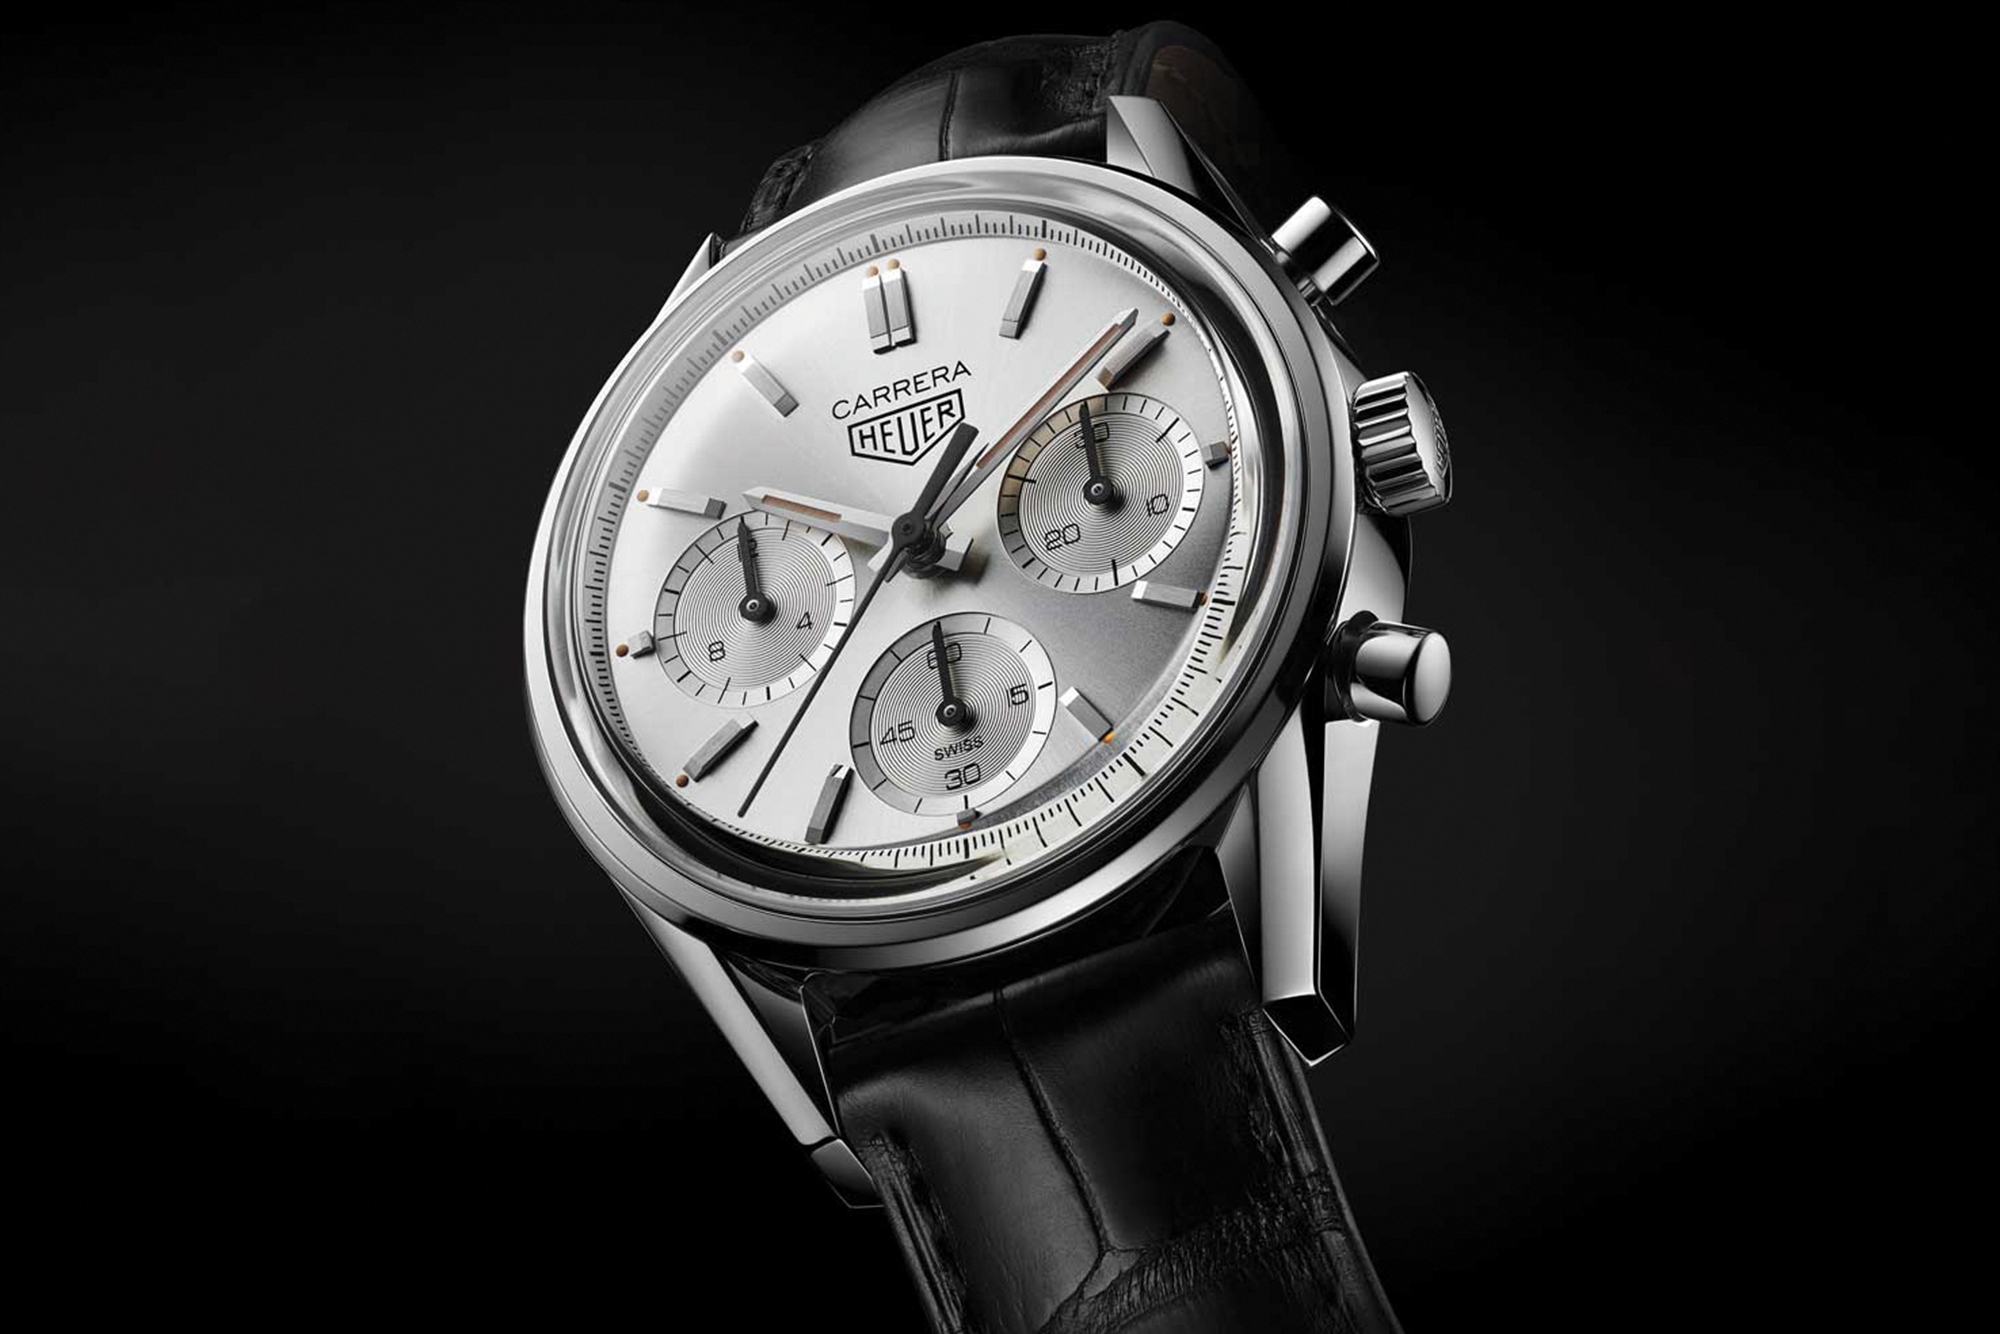 Heuer Carrera watch